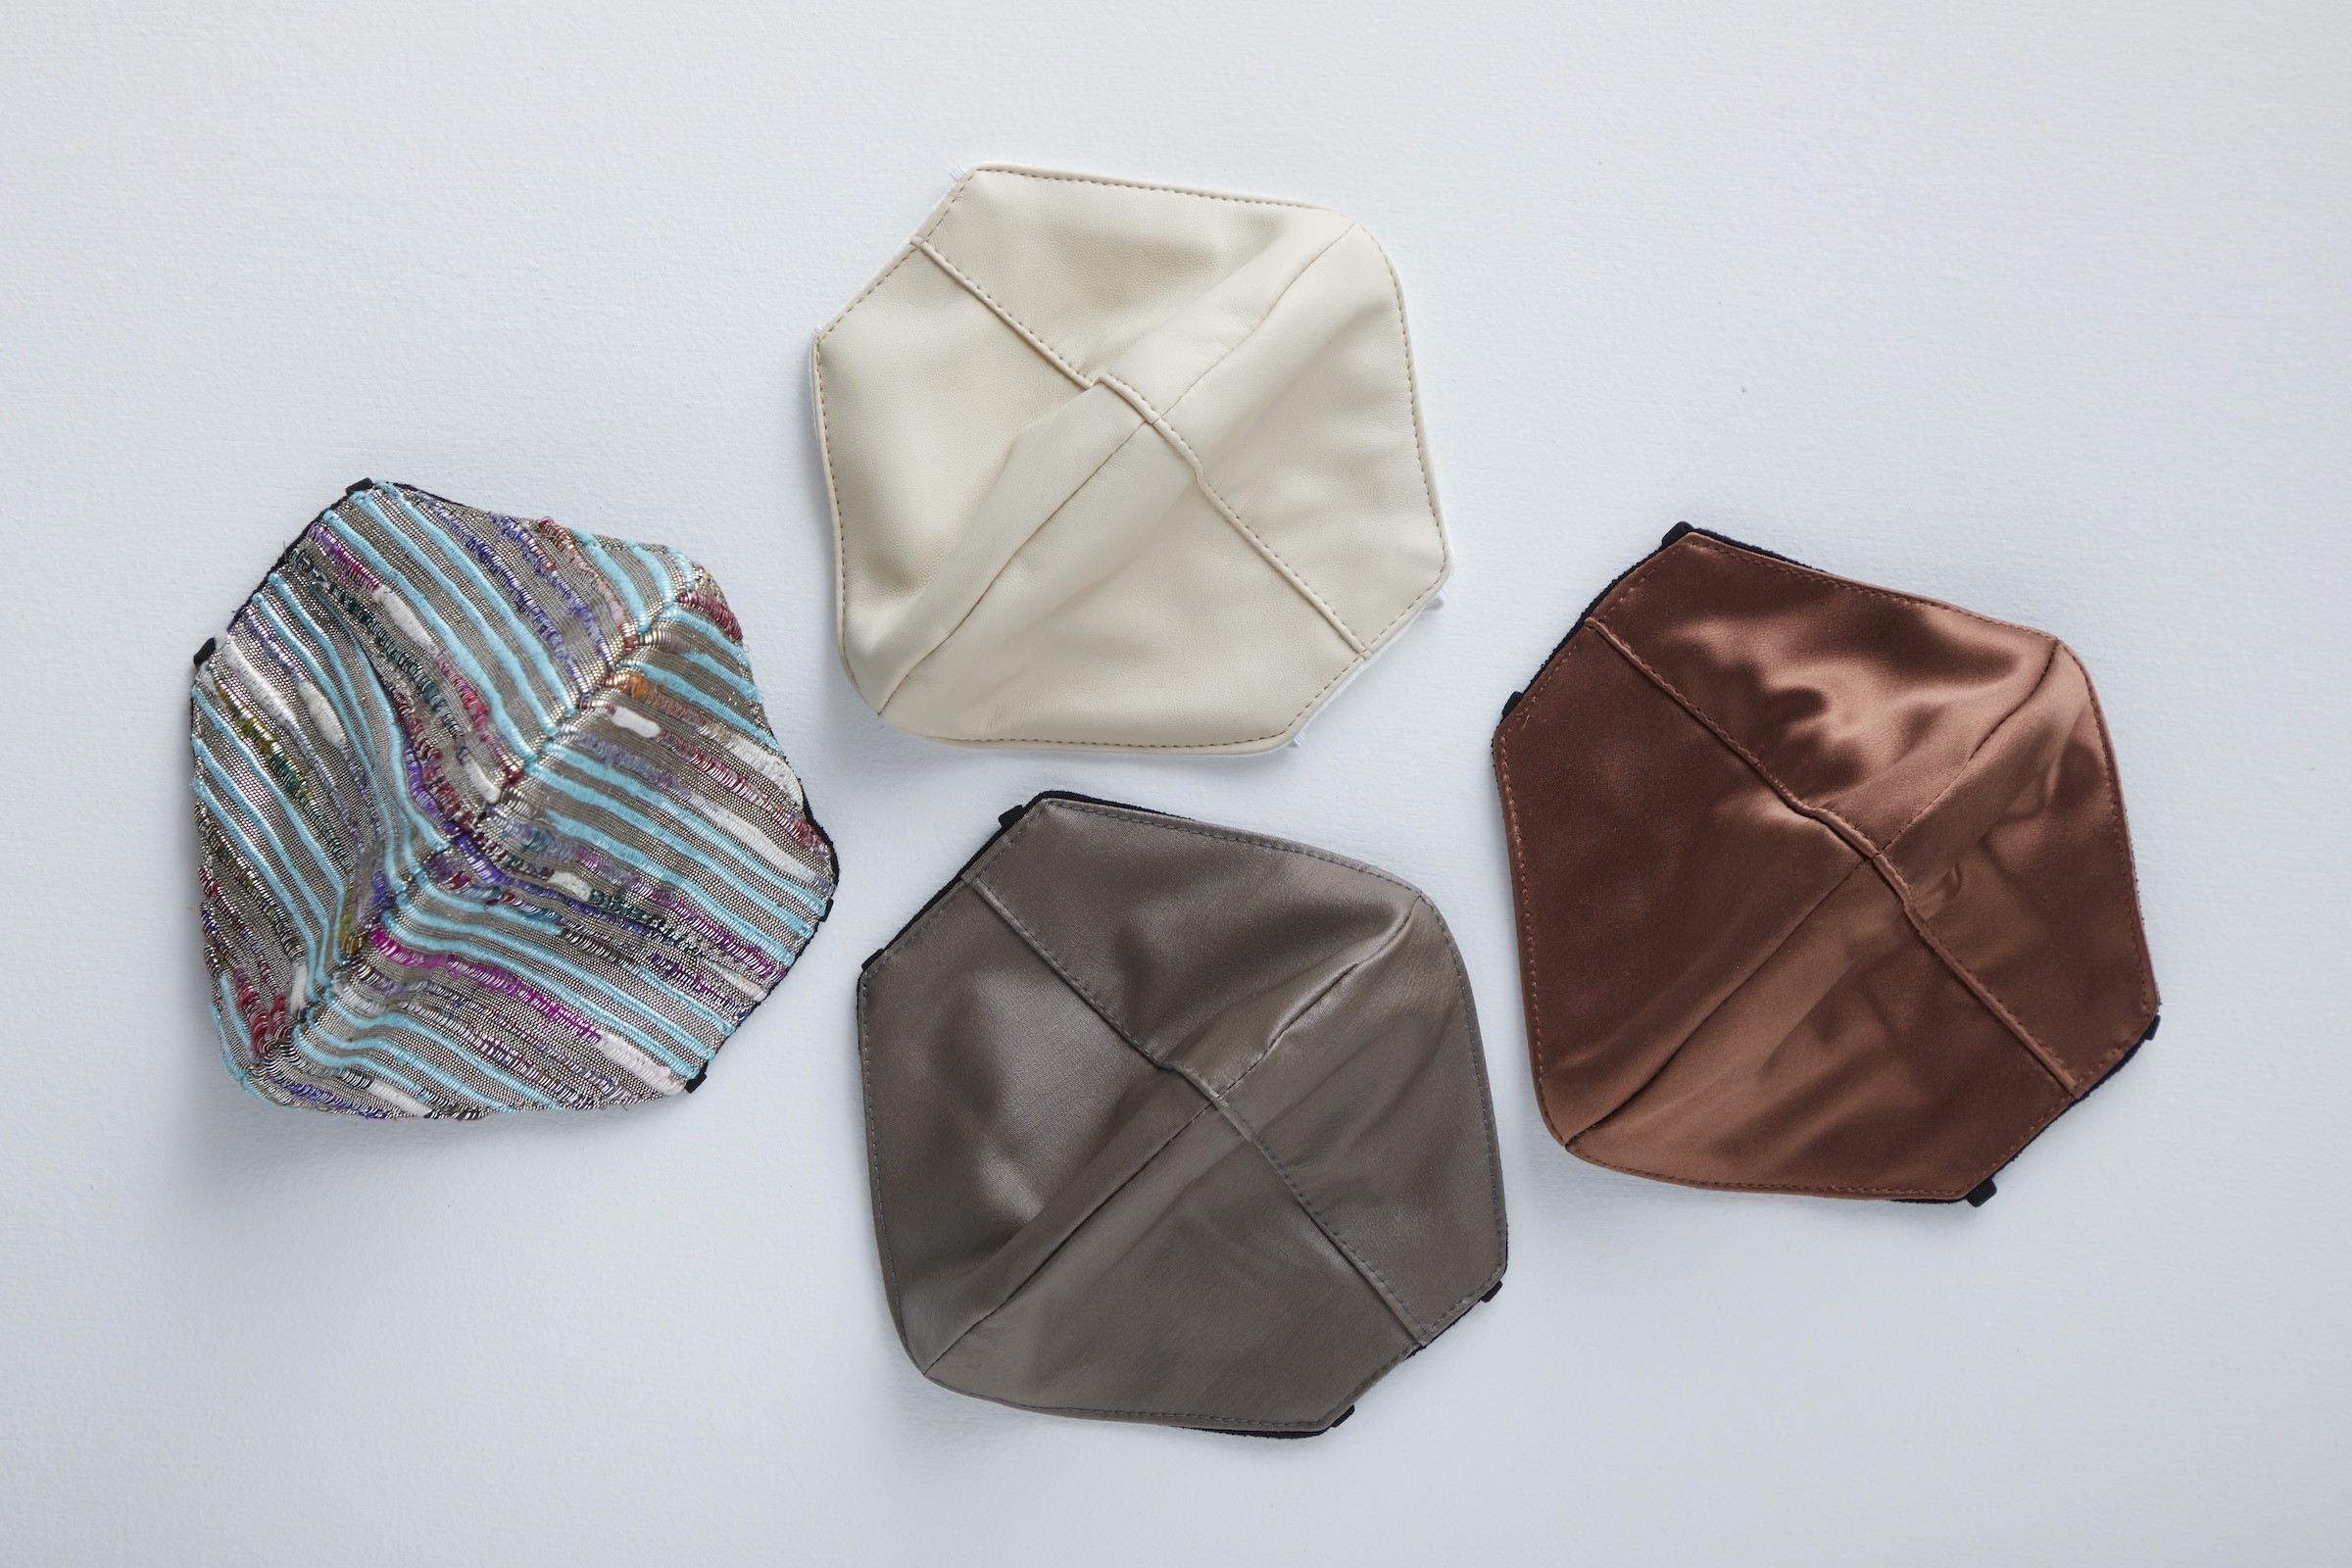 4 shimmery cloth facemasks. Three are solid-colored neutrals and one has sequined blue, purple, and gray stripes.